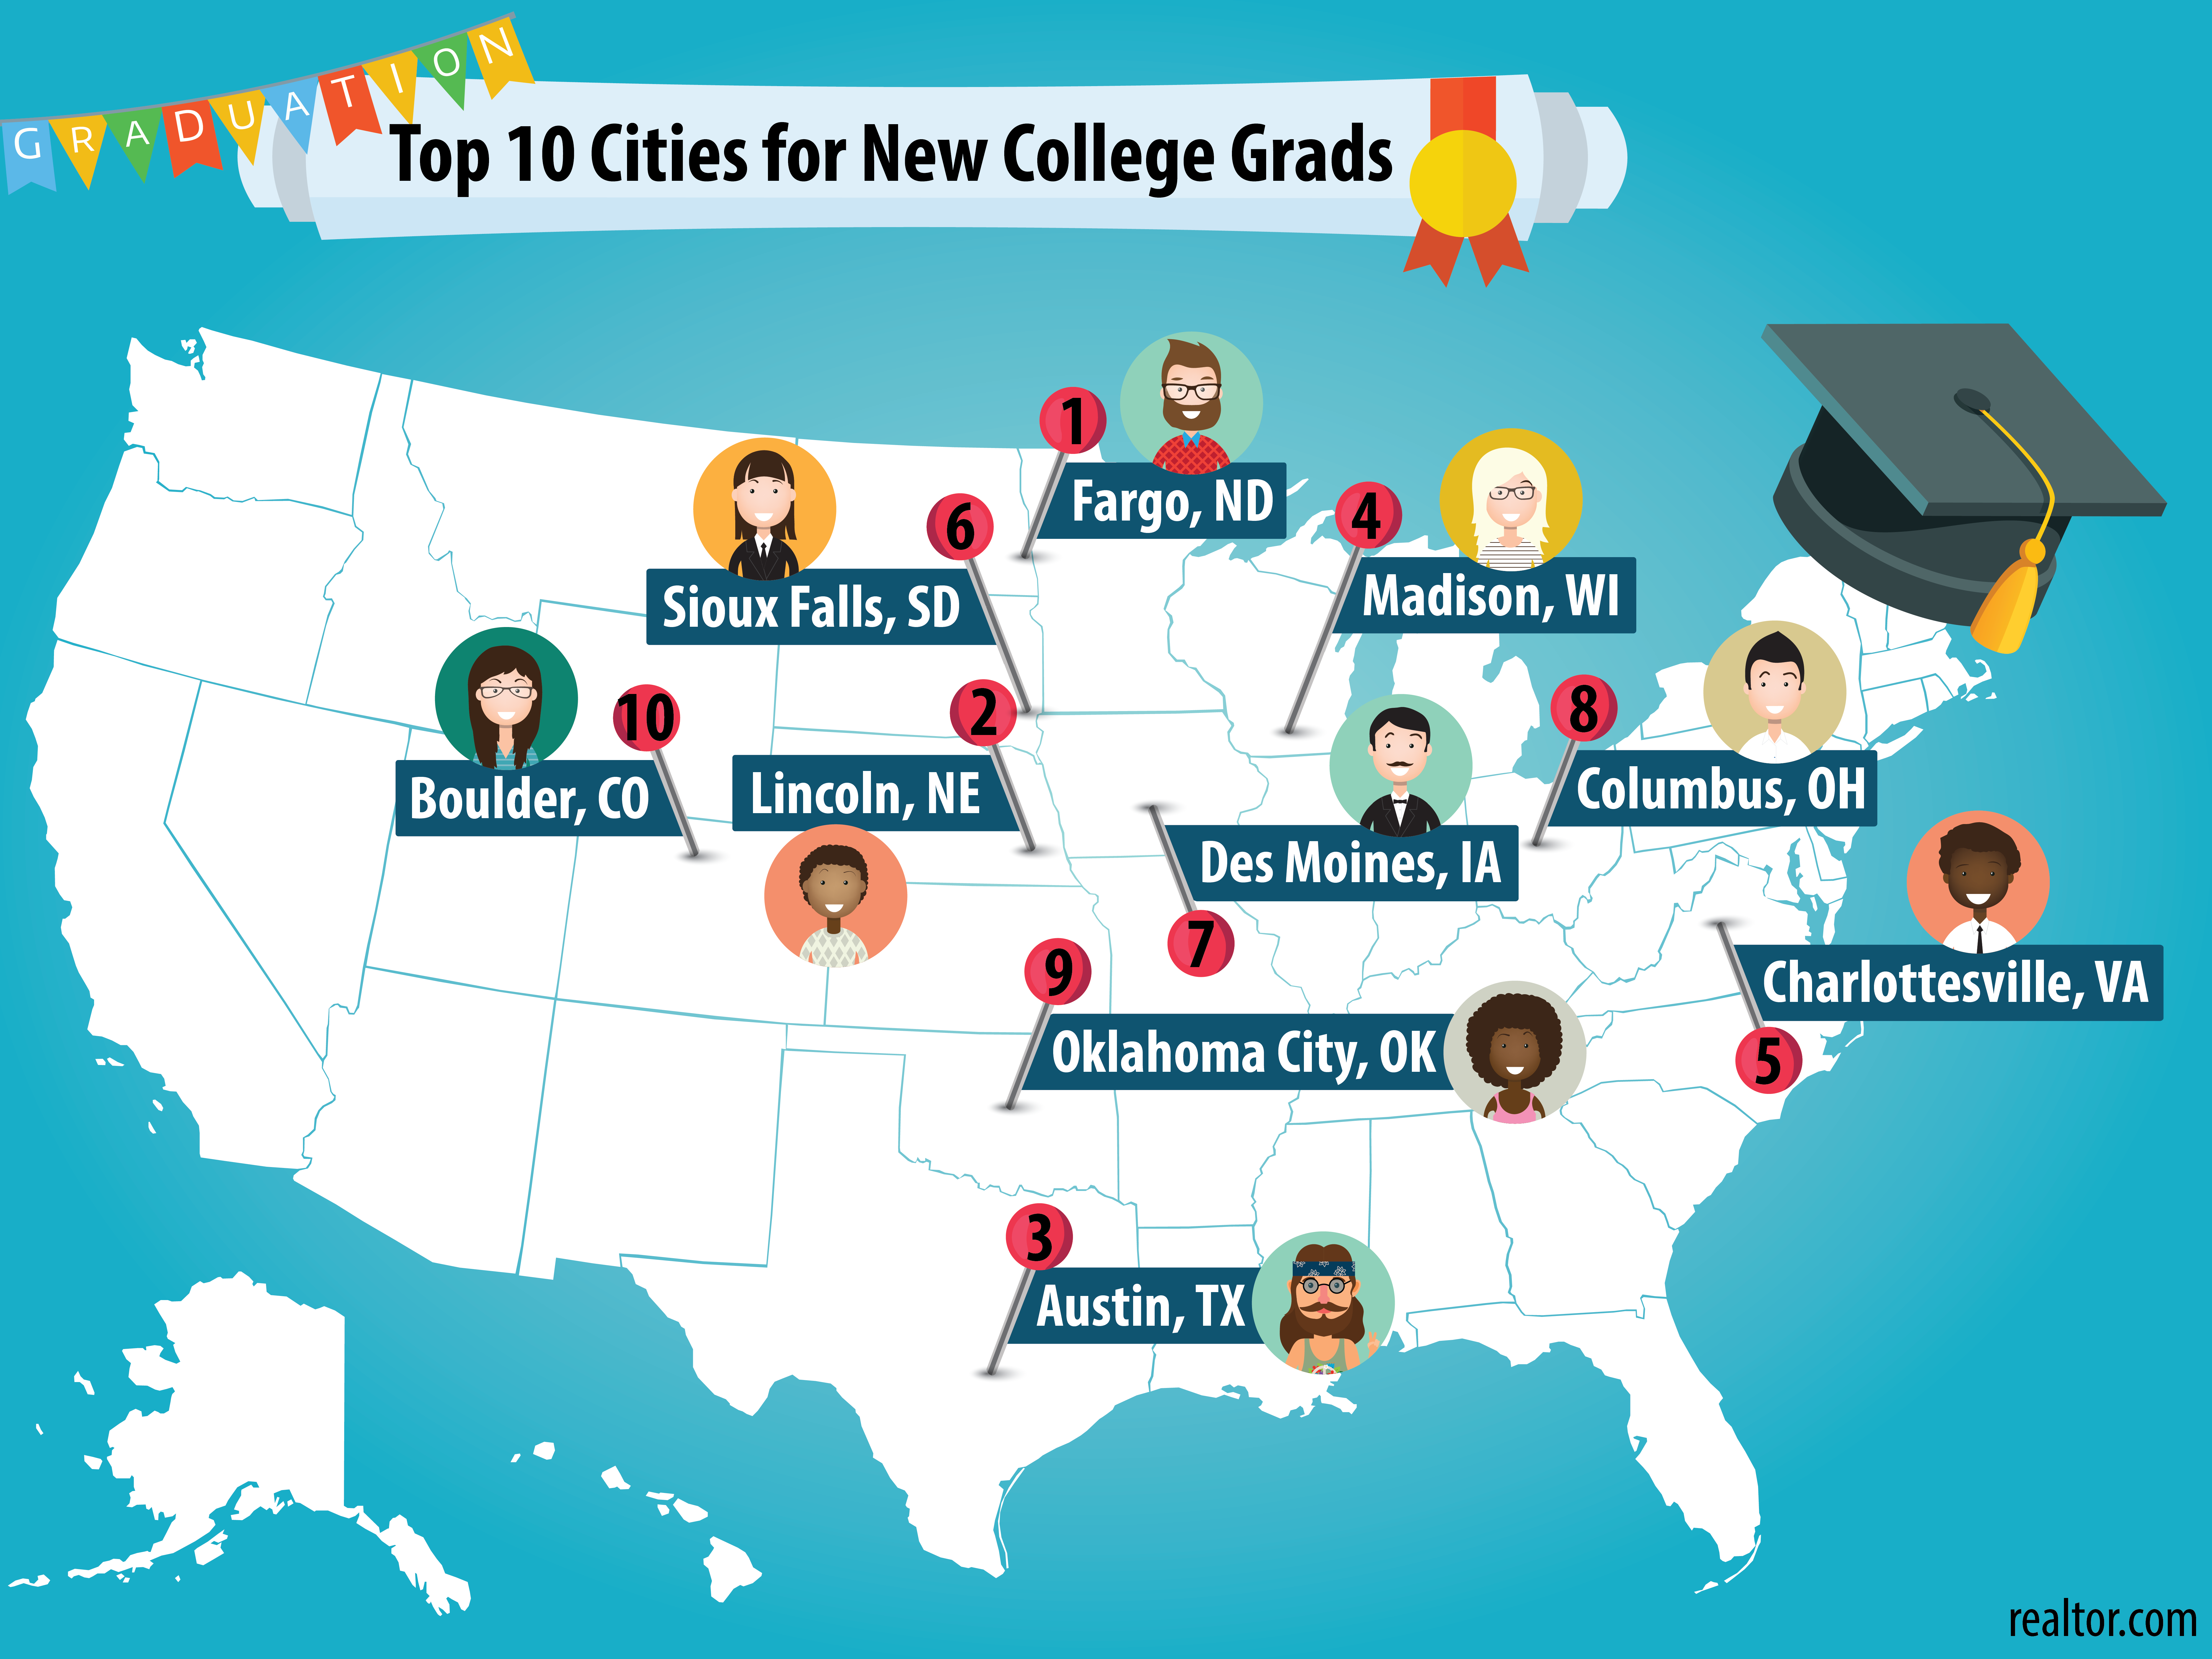 Austin third in list of top cities for new college graduates